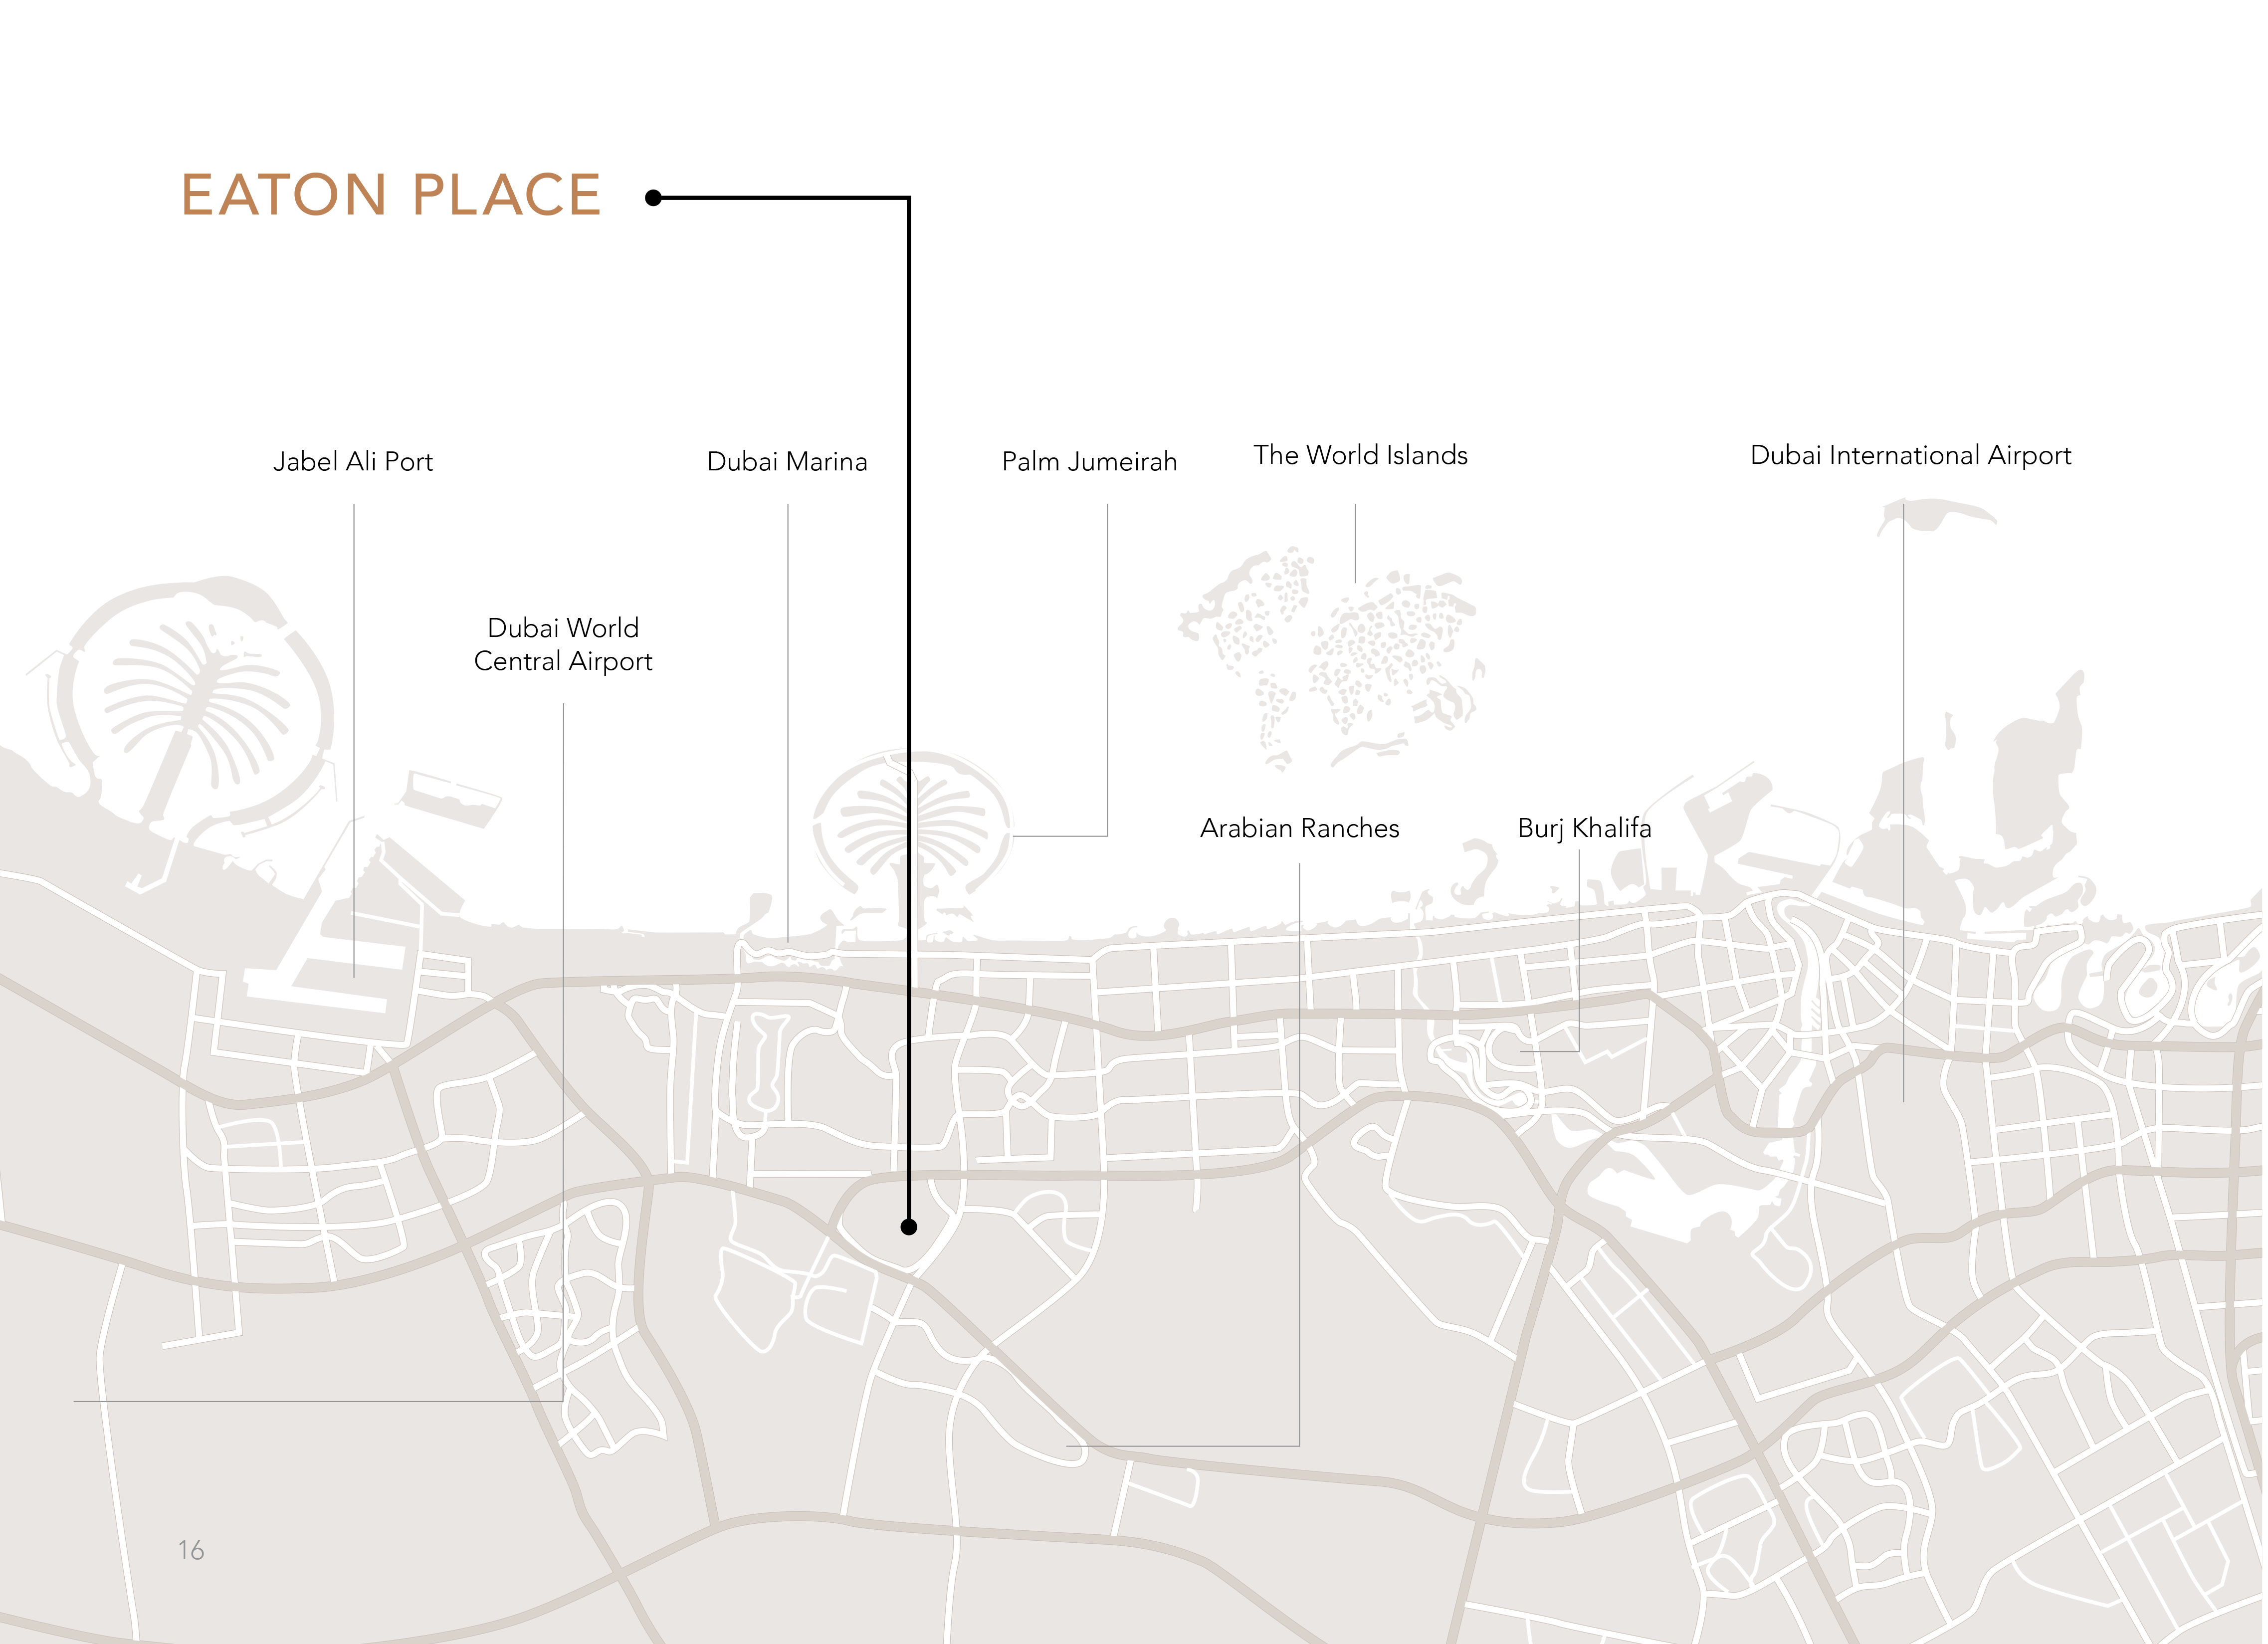 Eaton-Place Location Map